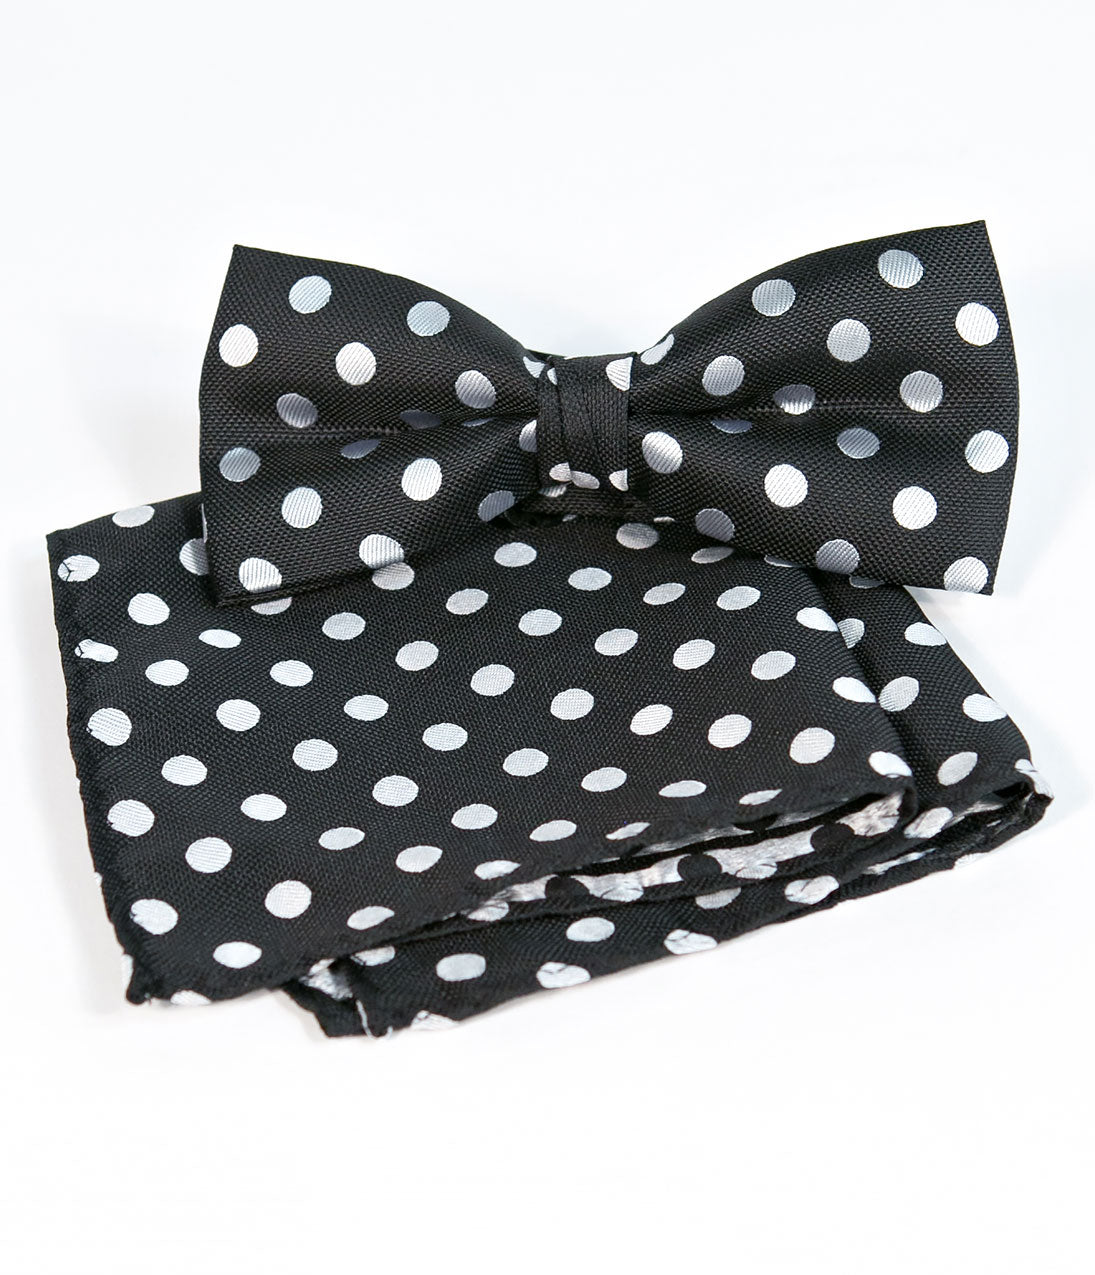 1920s Bow Ties | Gatsby Tie,  Art Deco Tie Black And White Dot Bow Tie $12.00 AT vintagedancer.com